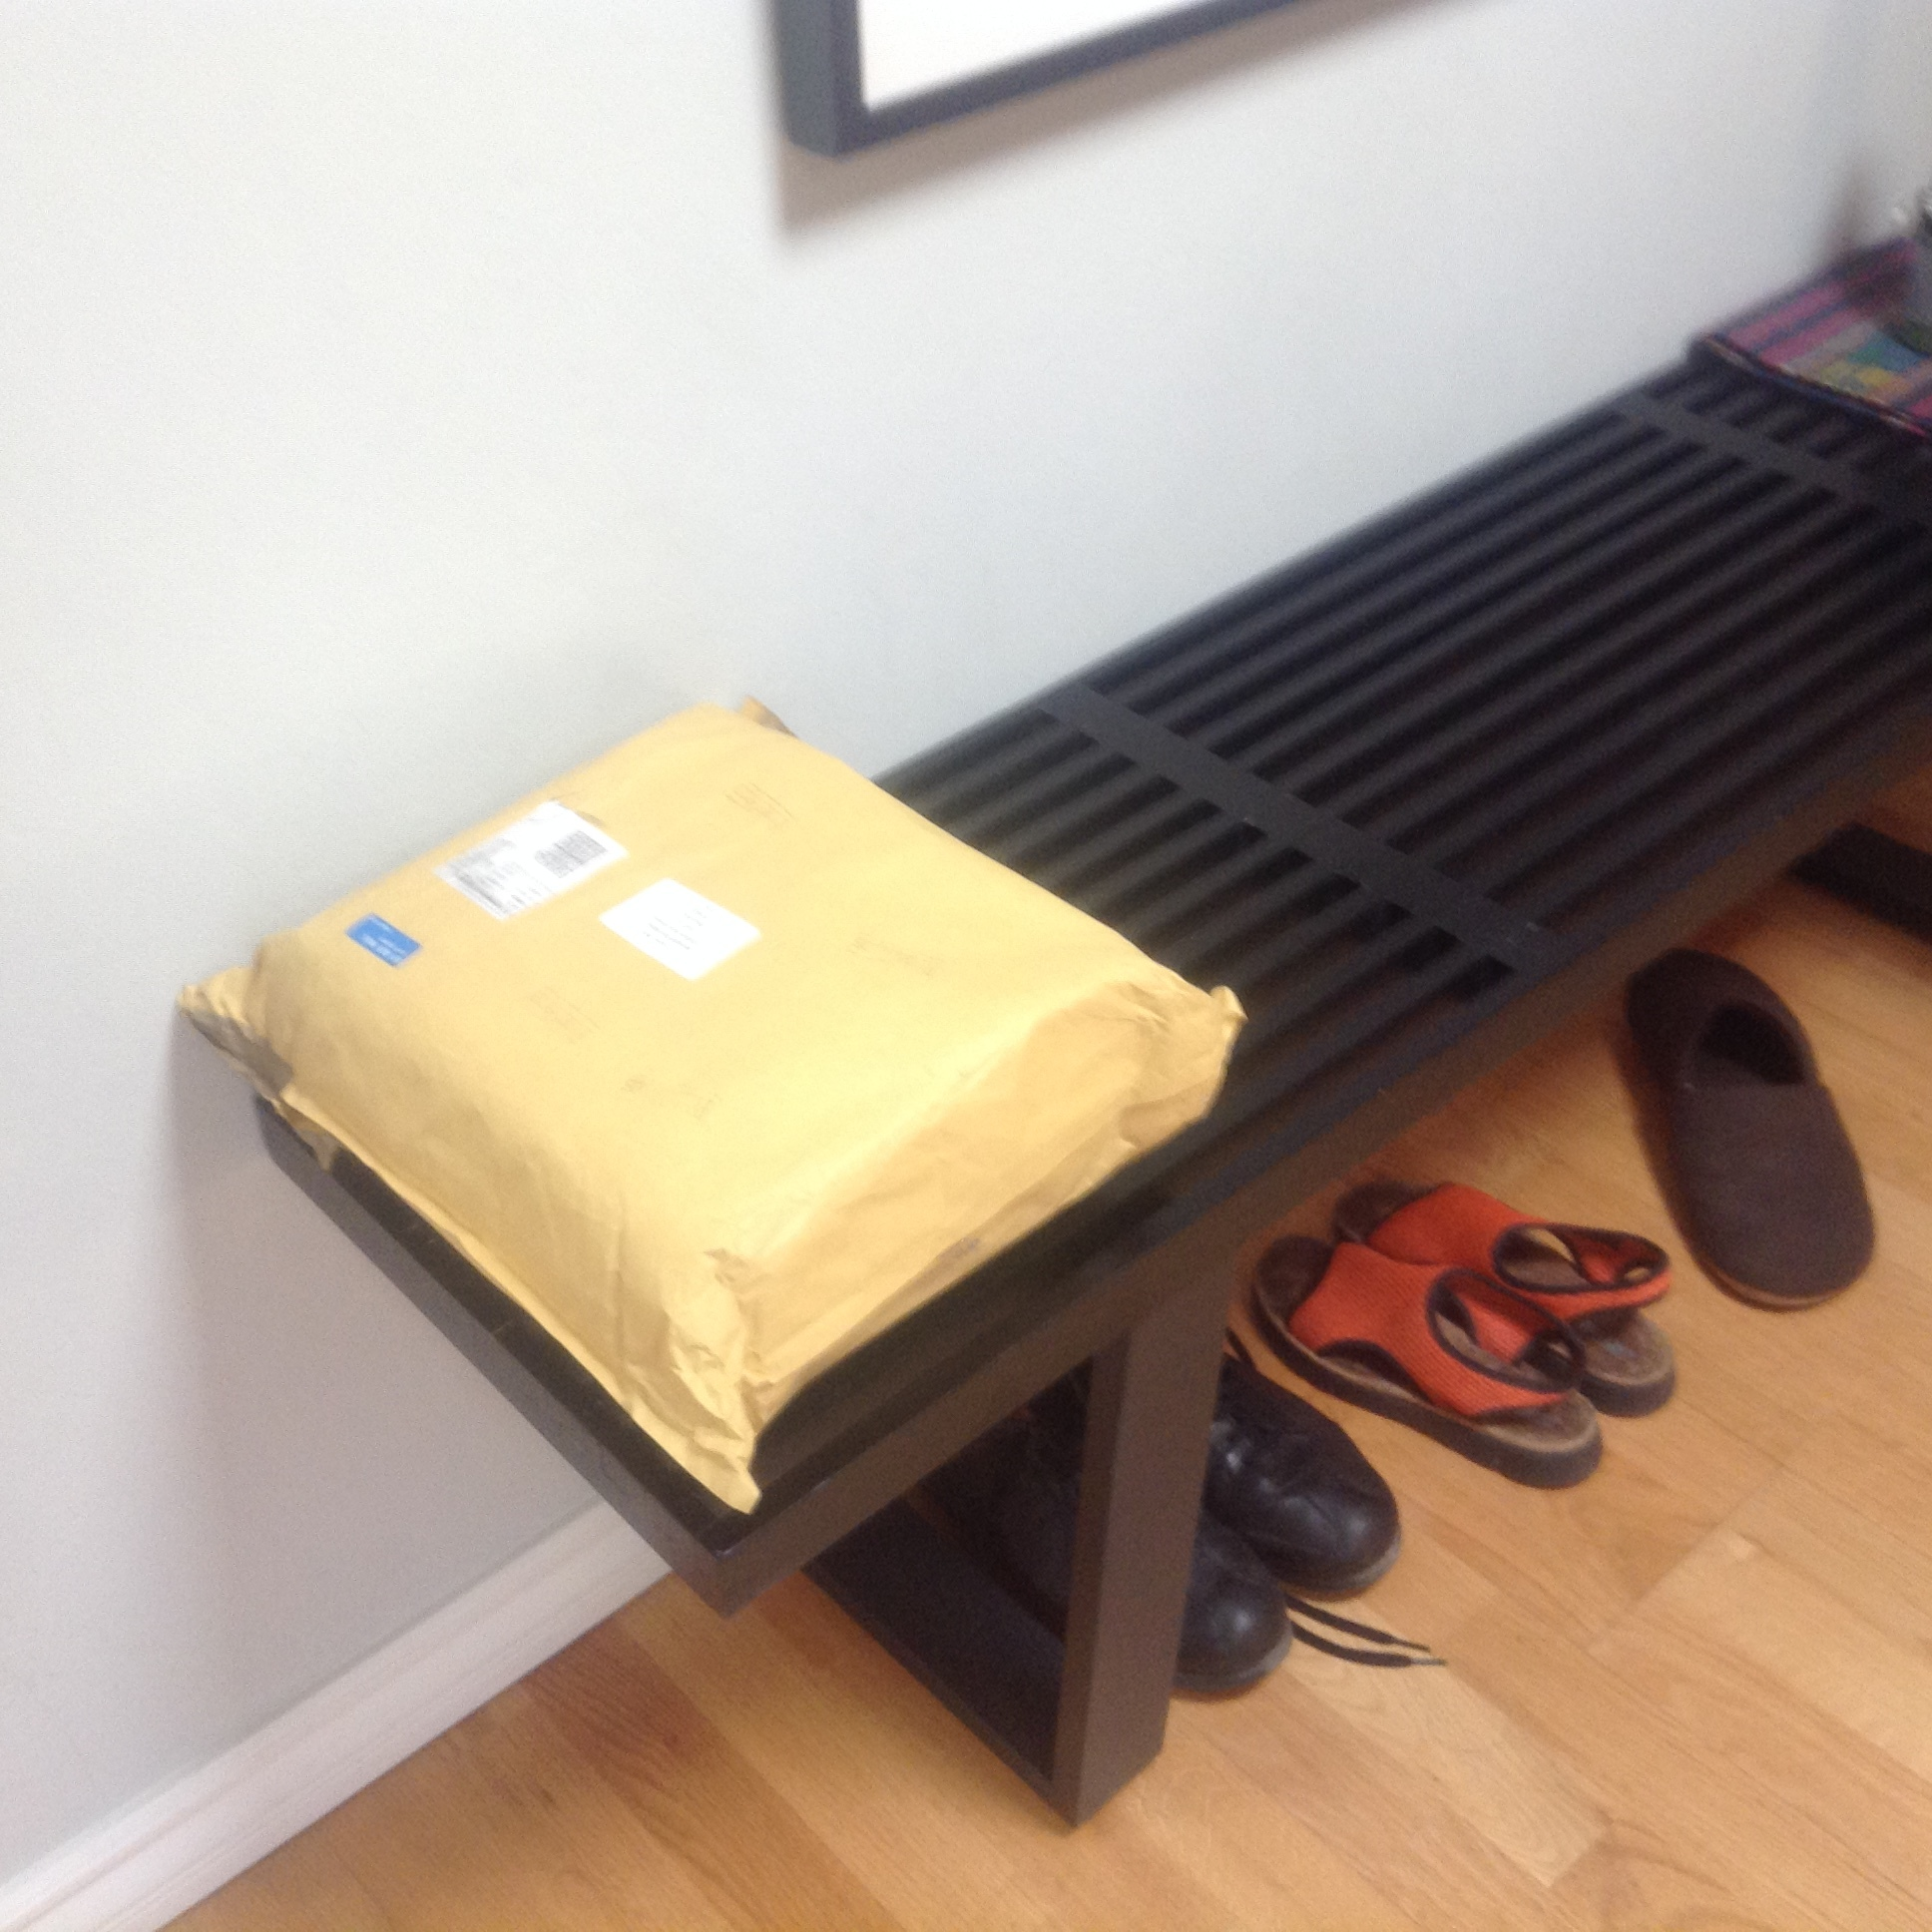 Two days ago I found this package sitting in front of our apartment door, brought up, no doubt, by a kind neighbour, or perhaps the postman. I wondered what it was, then realised that it must be the 20 copies of my new collection of poems,  The Hotel Eden ,  that I ordered from Carcanet, along with my 6 complimentary copies.  I brought it in, of course, and set it on the bench in the entry with the shoes, my keys, my sunglasses, my backpack.Did I tear it open? Nope. Two days later it is still there, as pictured. My husband was ready to open it the first day,couldn't believe I wouldn't. Last night again. This morning. 'When I get results in the lab, I want to see them right away,' he said. 'What's with you?'  This happens with each book, not the translated ones so much as the ones I write for myself. Am I afraid I'll be disappointed in the poems?If only I'd had ten more years to work on them?Once I get the books there's nothing more I can do to improve them? It's way too final...  'I'm waiting to be in the mood,' I told my husband.